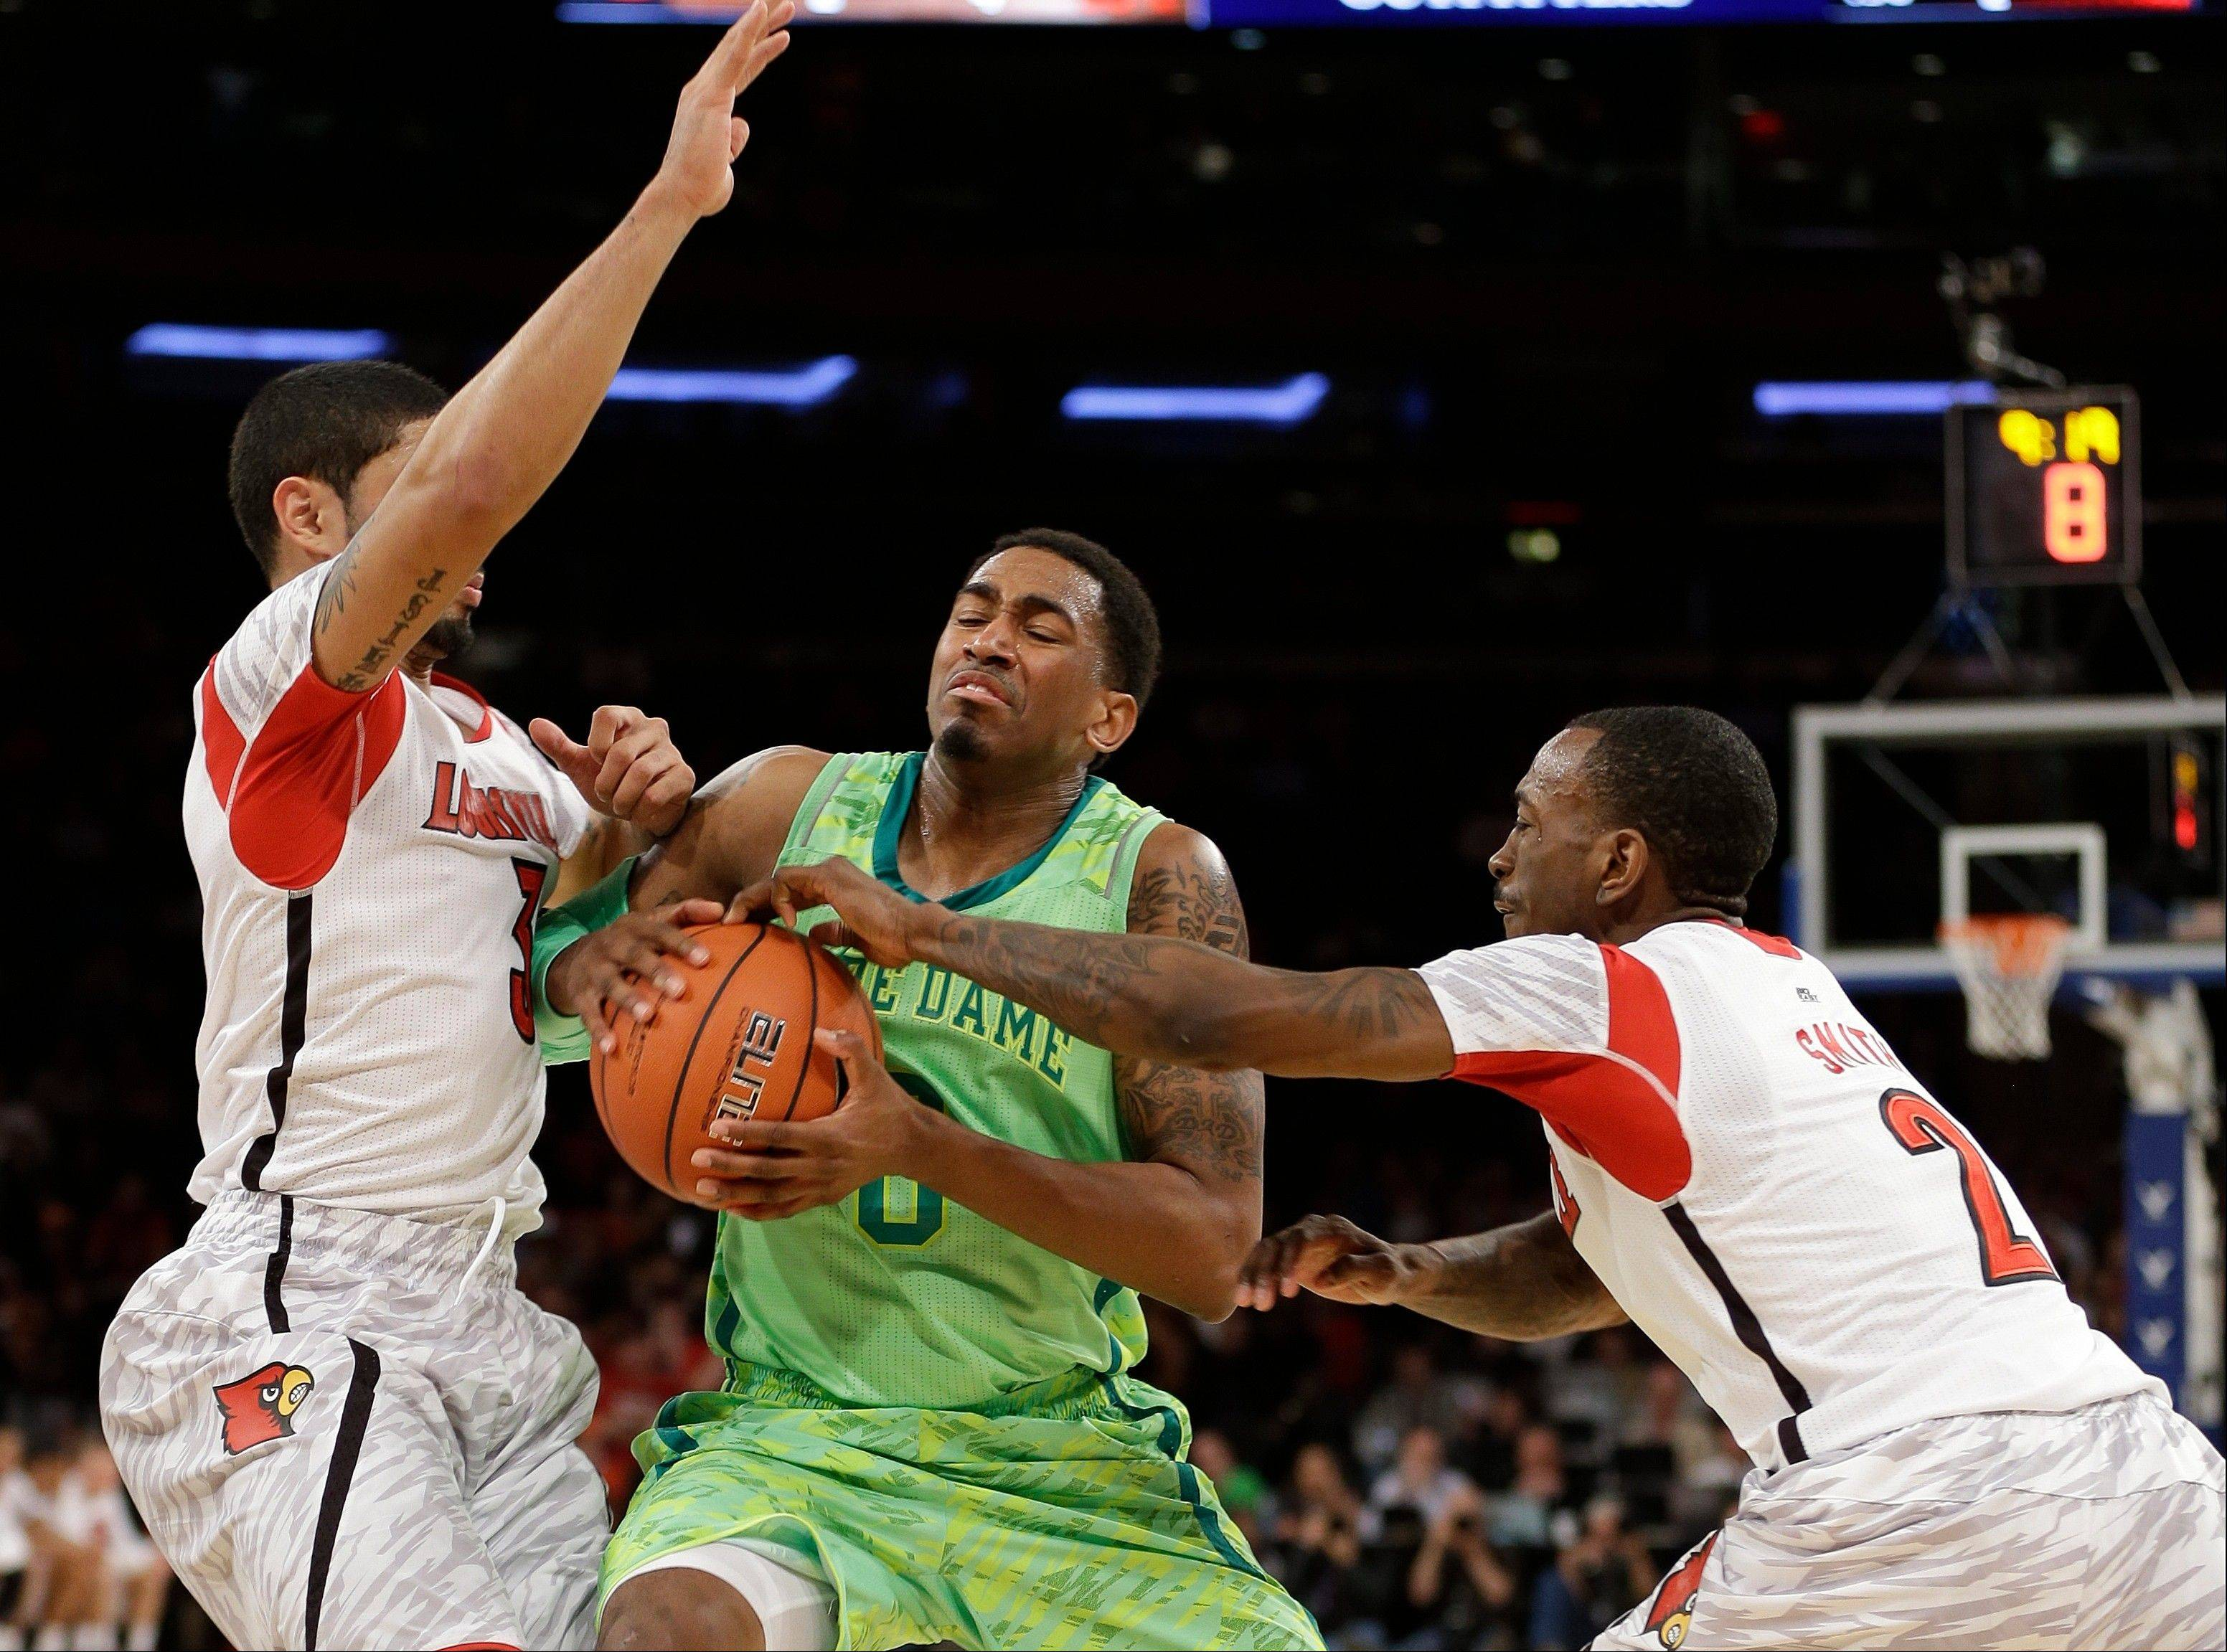 Notre Dame's Eric Atkins (0) moves between Louisville's Russ Smith (2) and Peyton Siva (3) during the second half of an NCAA college basketball game at the Big East Conference tournament Friday, March 15, 2013, in New York. Louisville won 69-57. (AP Photo/Frank Franklin II)